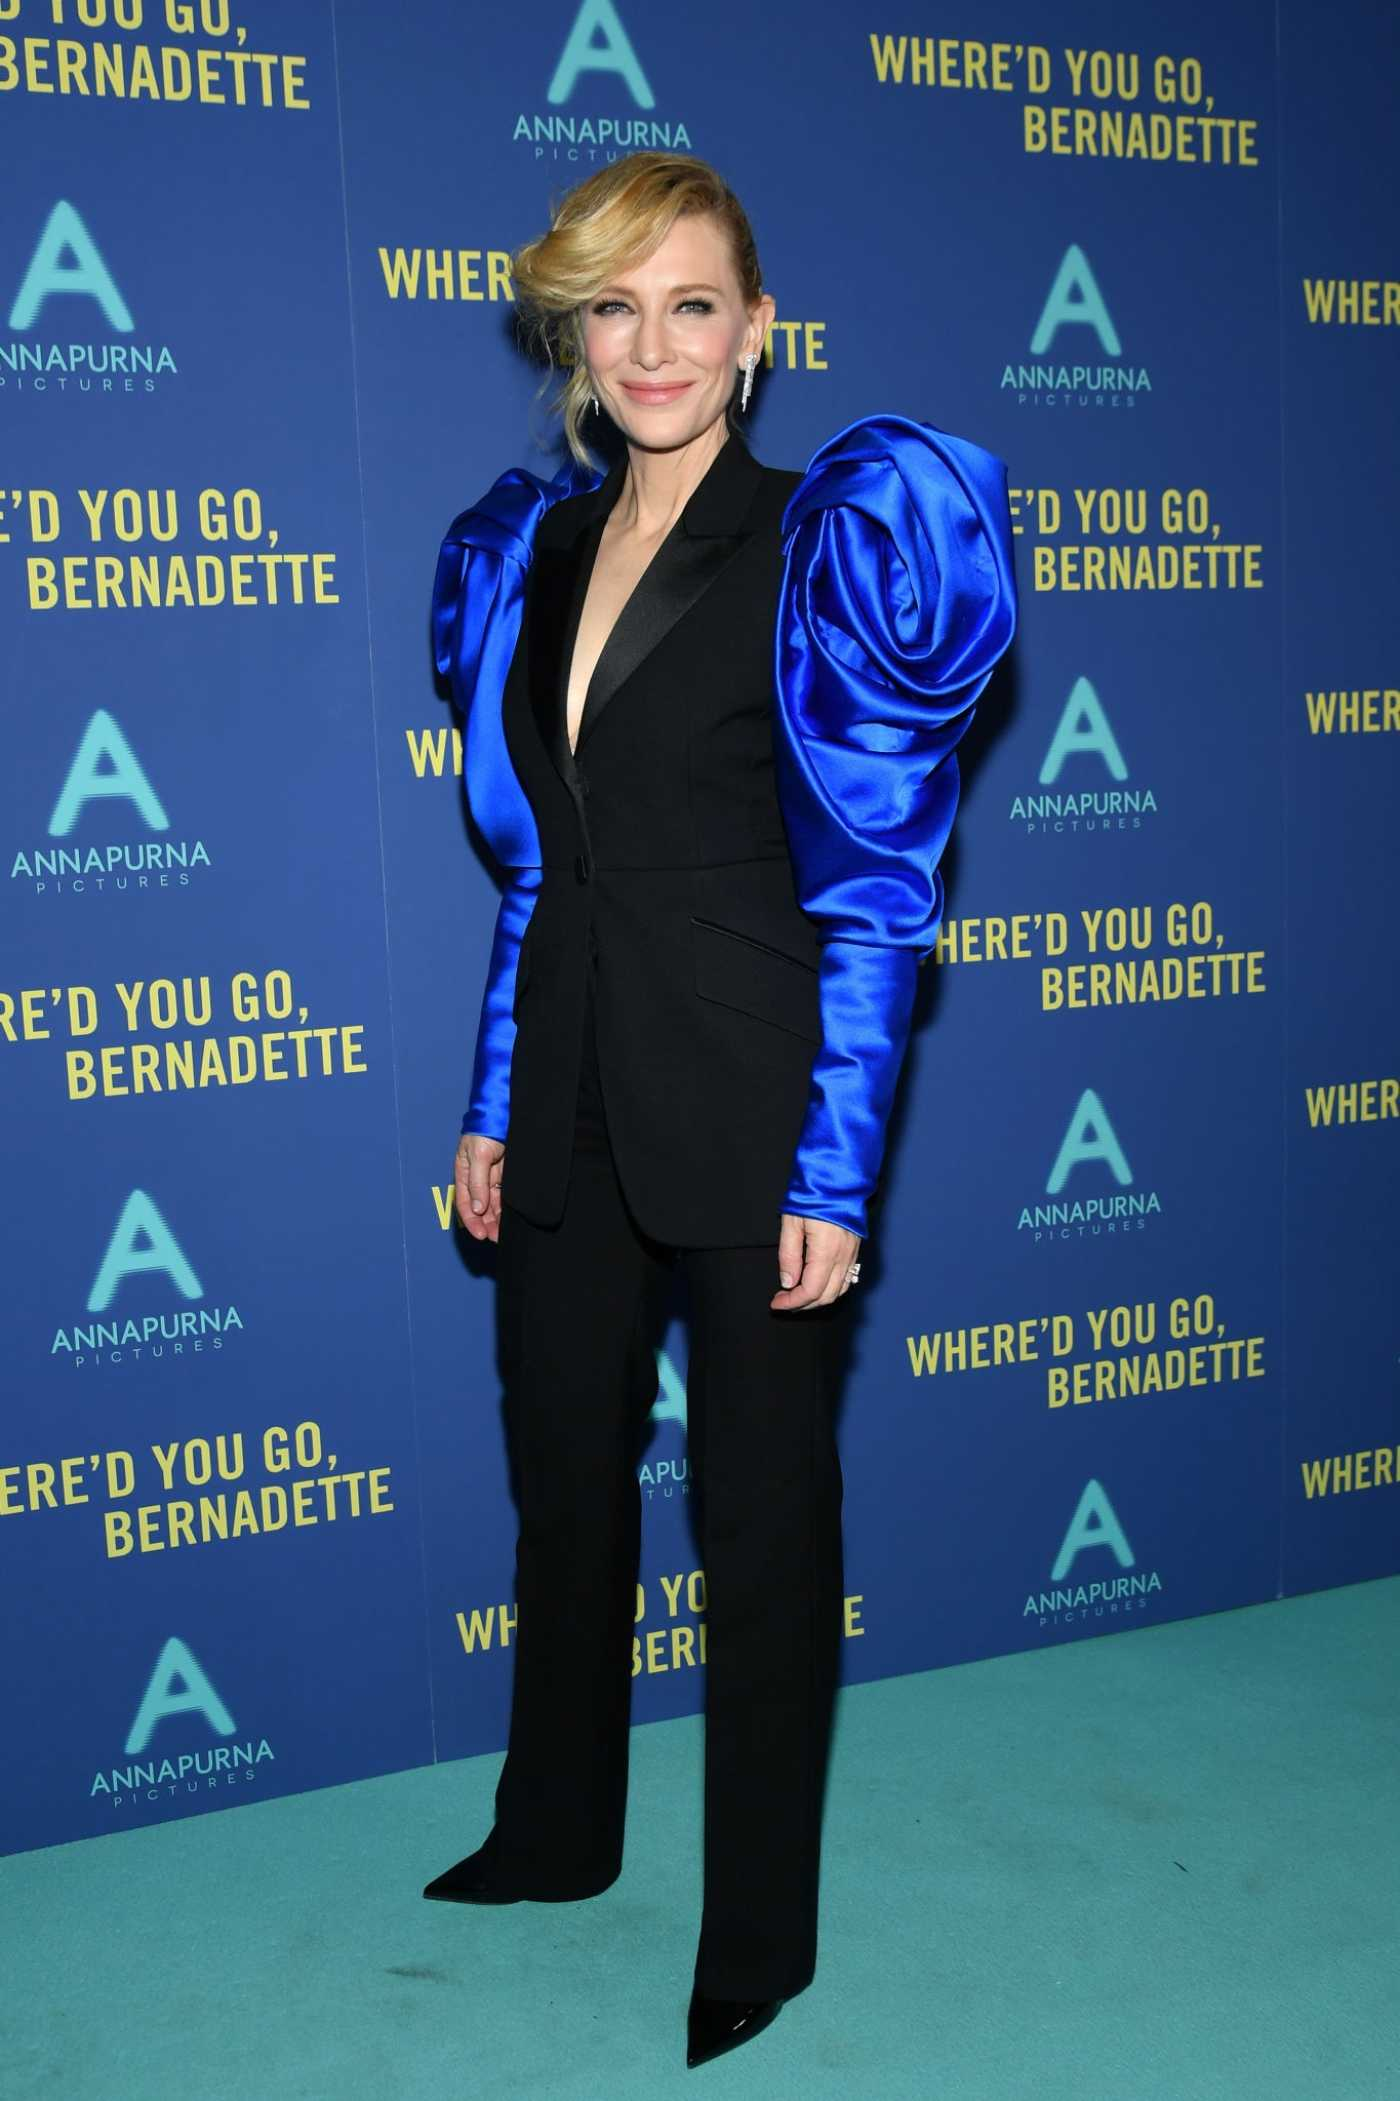 Cate Blanchett Attends the Where'd You Go, Bernadette Screening at Metrograph in New York City 08/12/2019